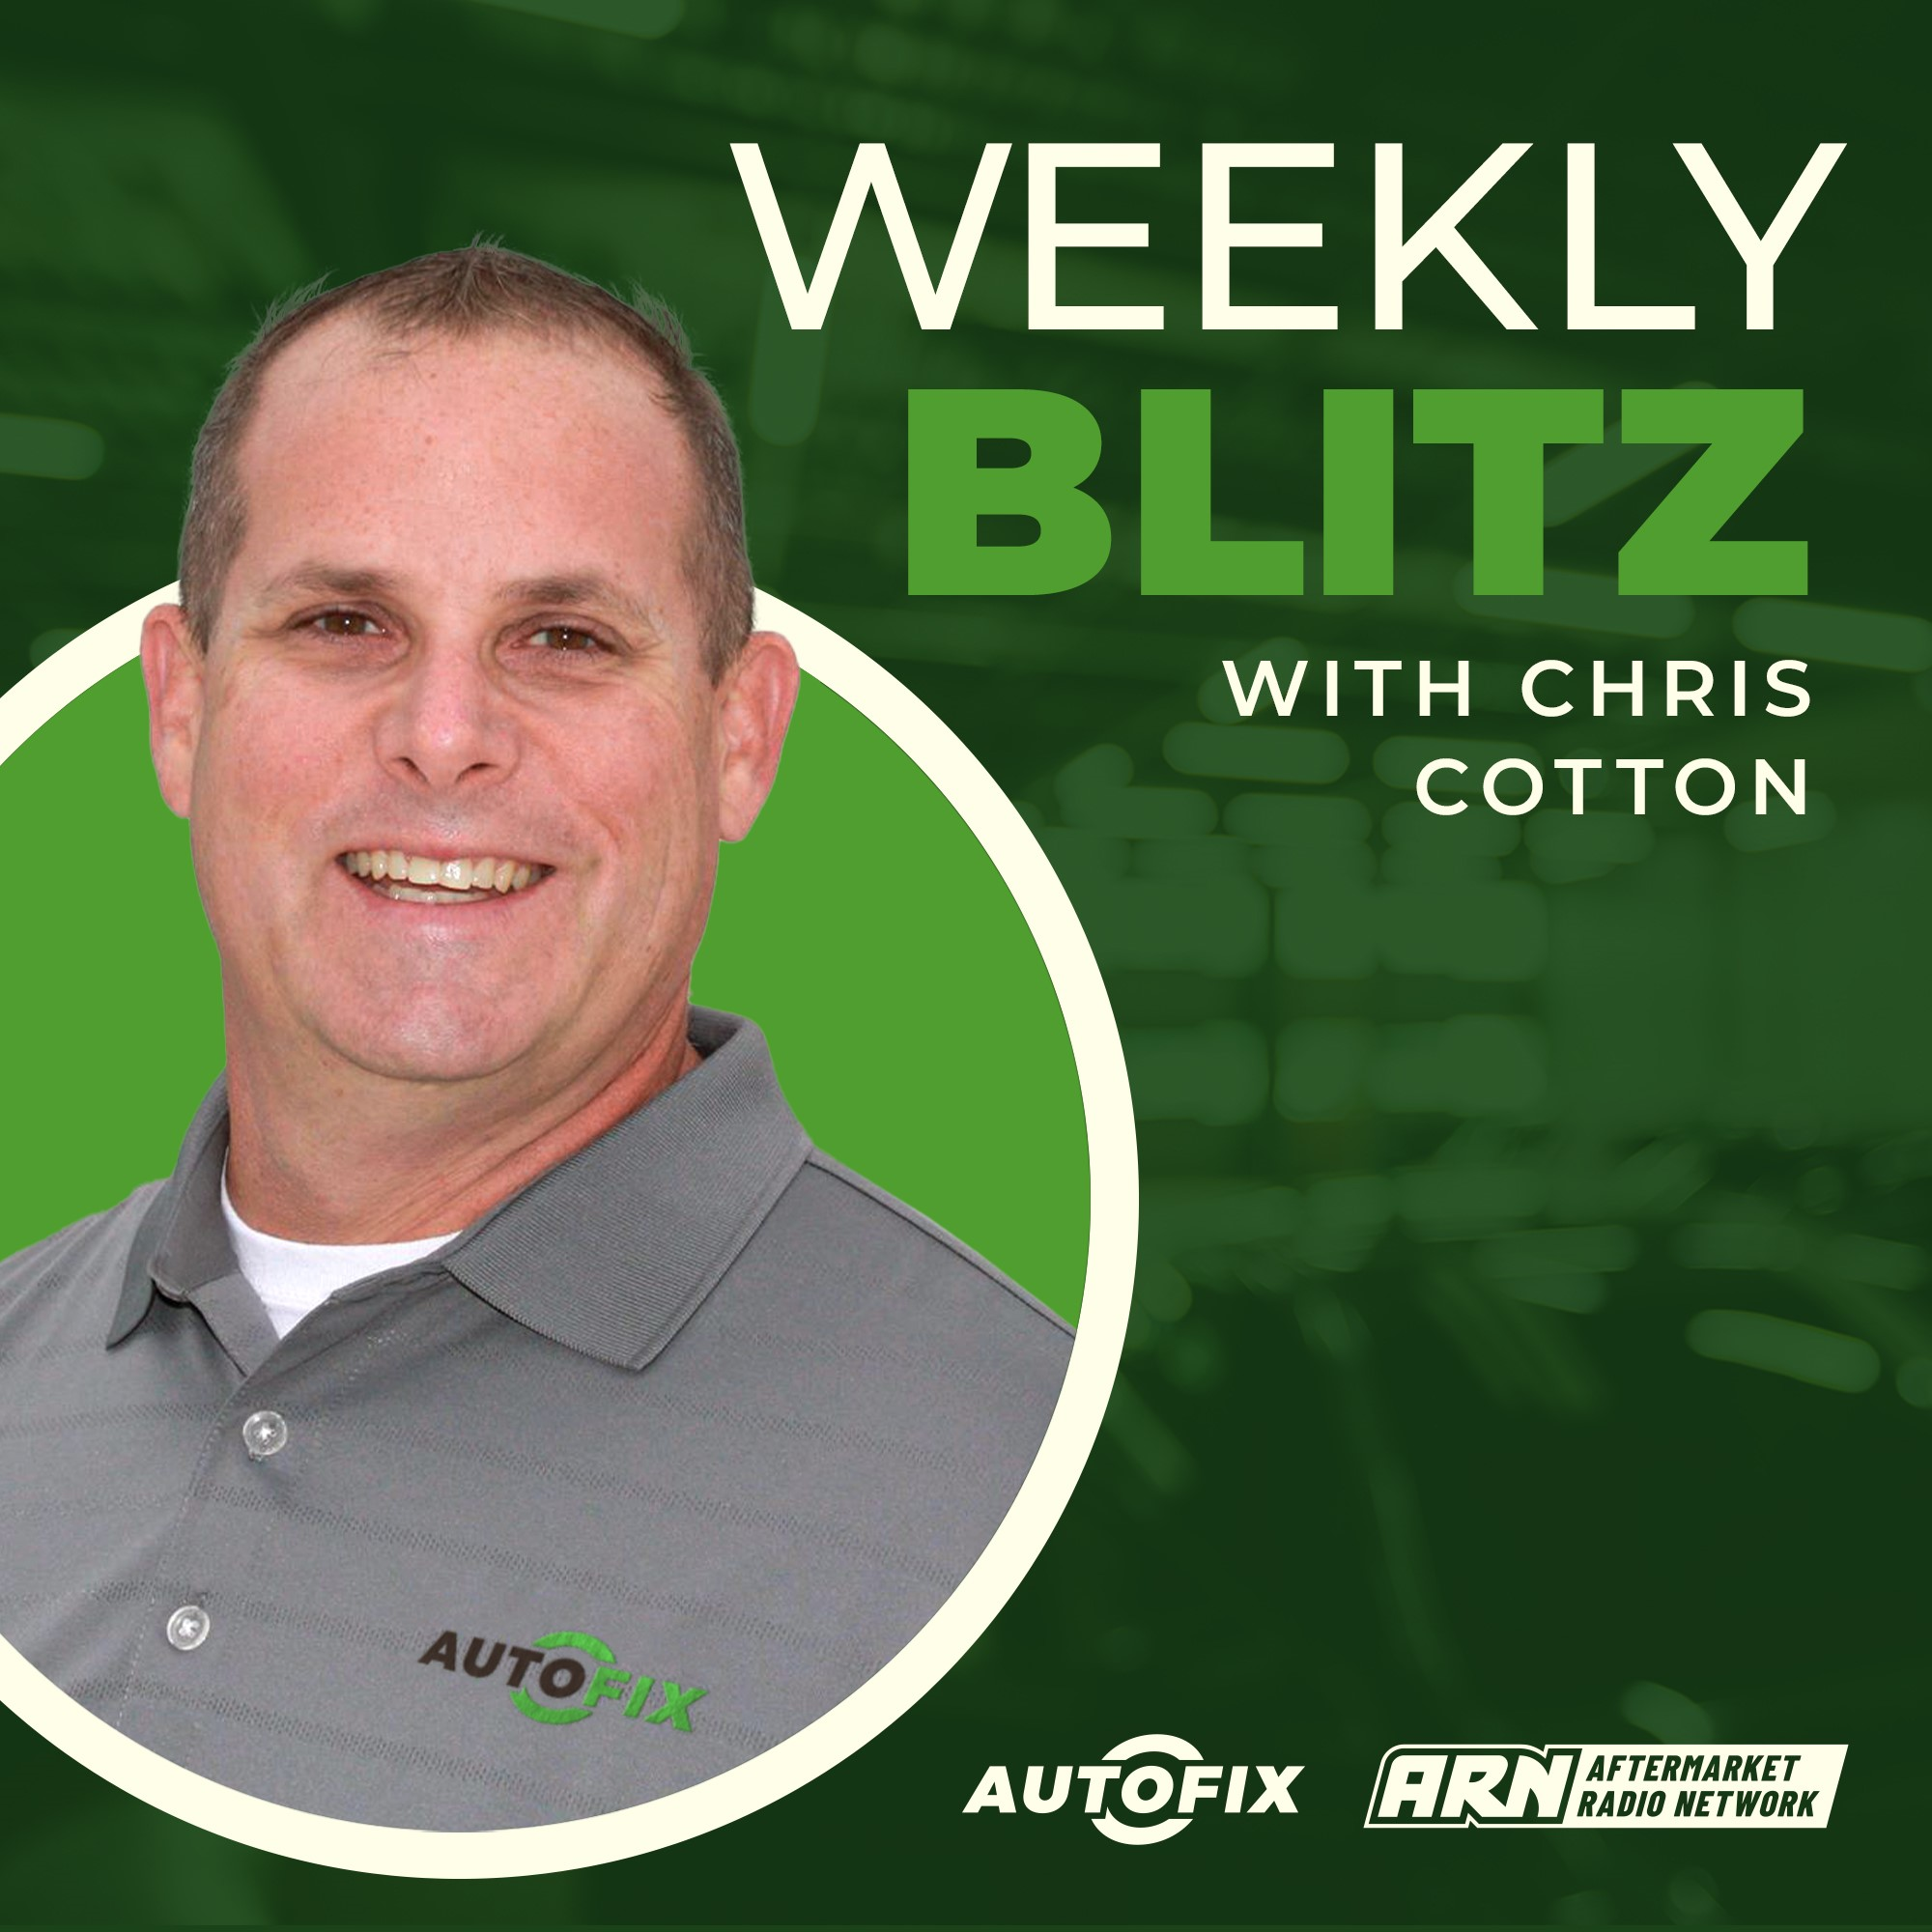 Weekly Blitz With Chris Cotton Cover Art SMP